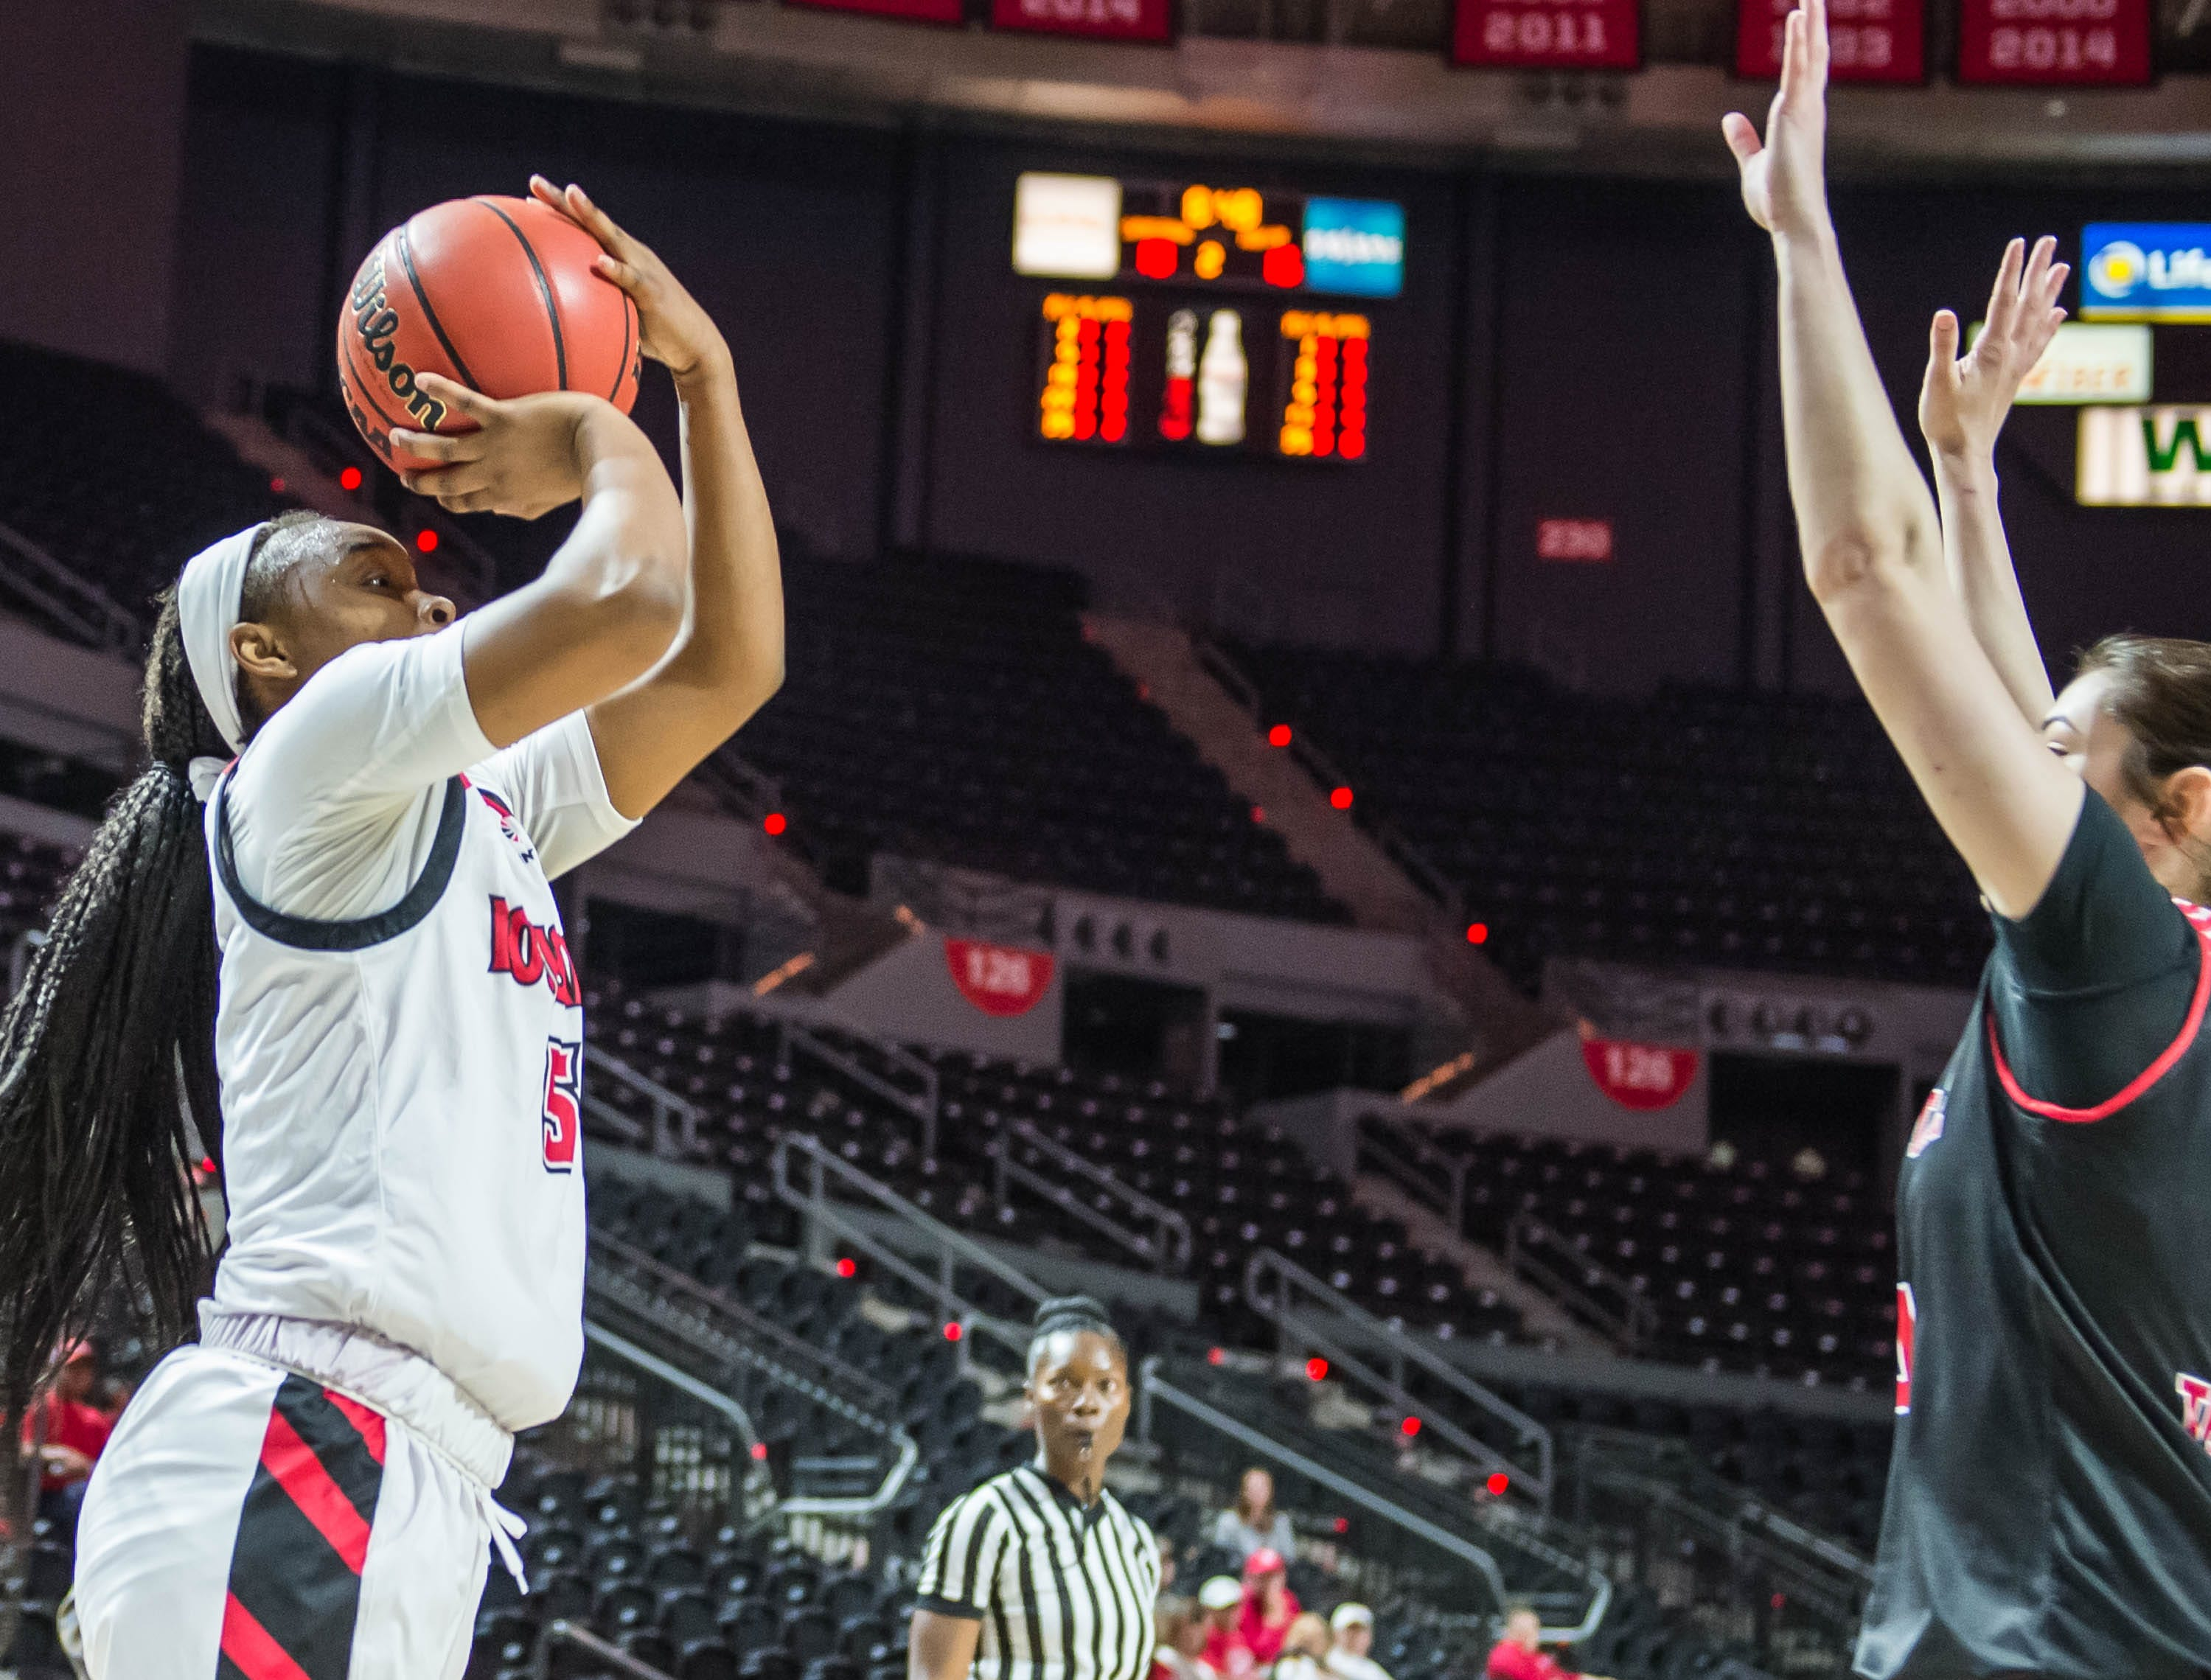 Cajuns guard Jomyra Mathis (5) with the jump shot as the Cajuns women's basketball team plays the Arkansas State Red Wolves at the Cajundome on Saturday, March 9, 2019.